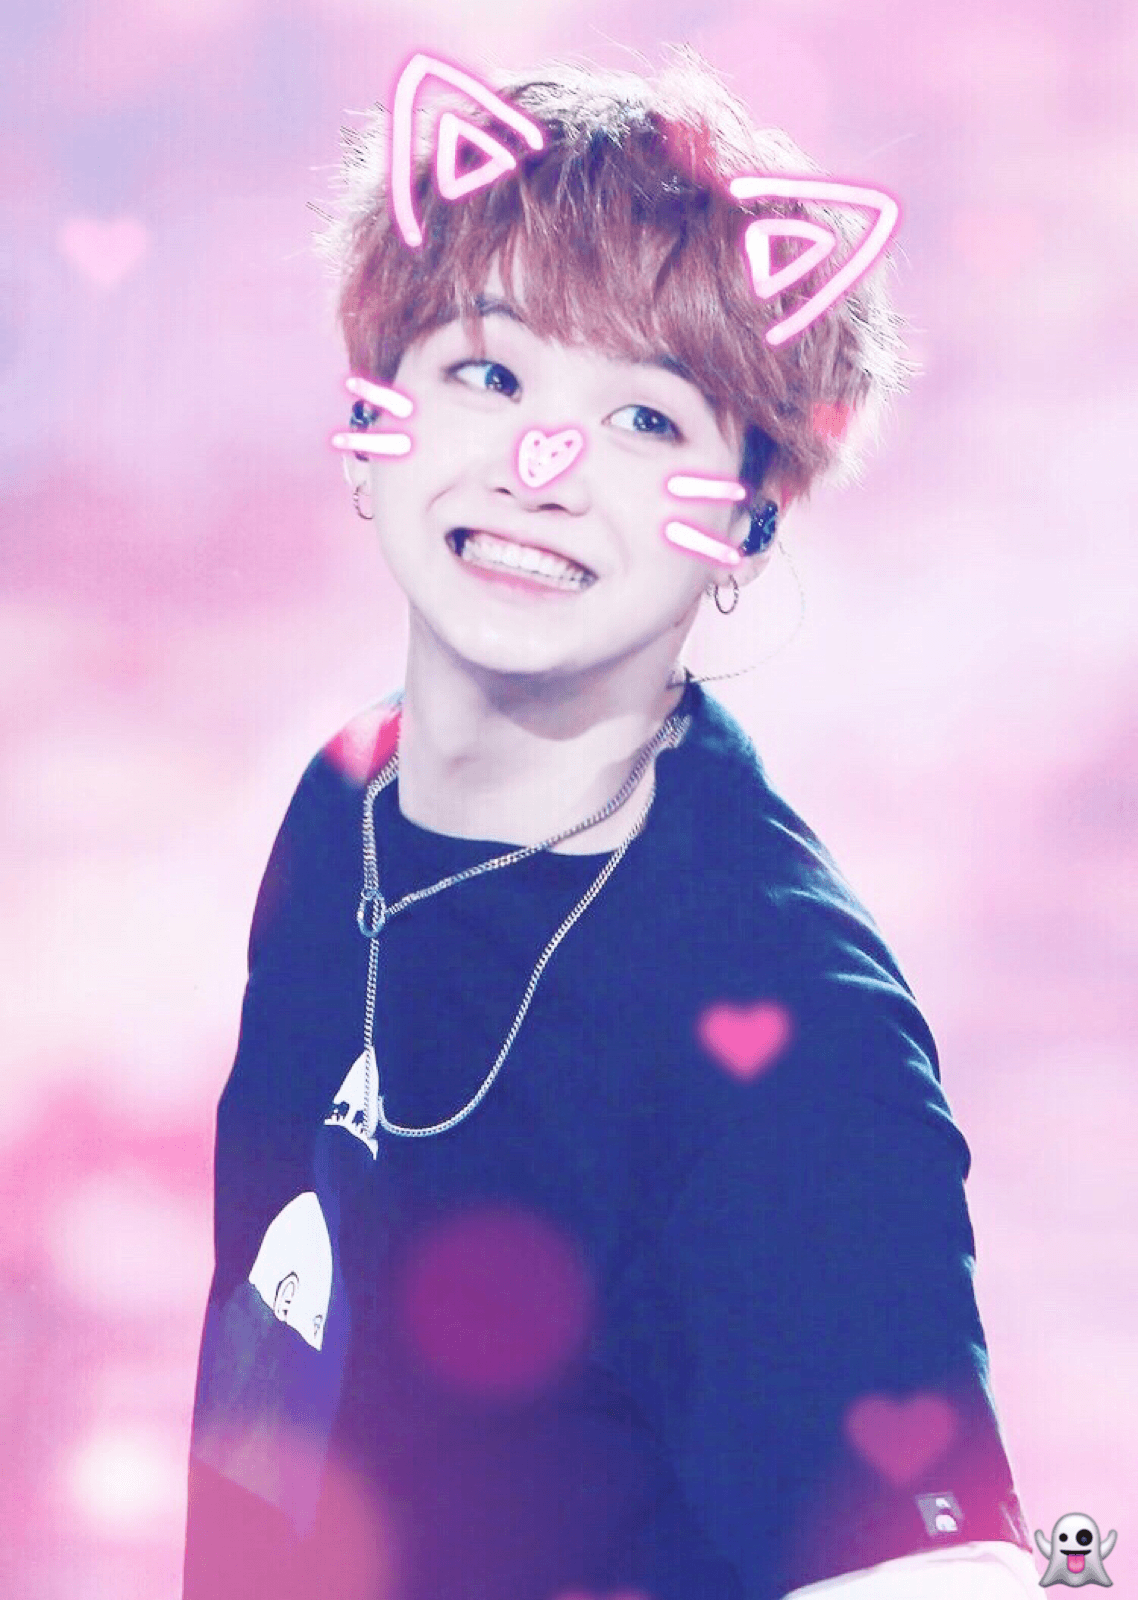 BTS Suga Cute Wallpapers   Top BTS Suga Cute Backgrounds 1138x1600